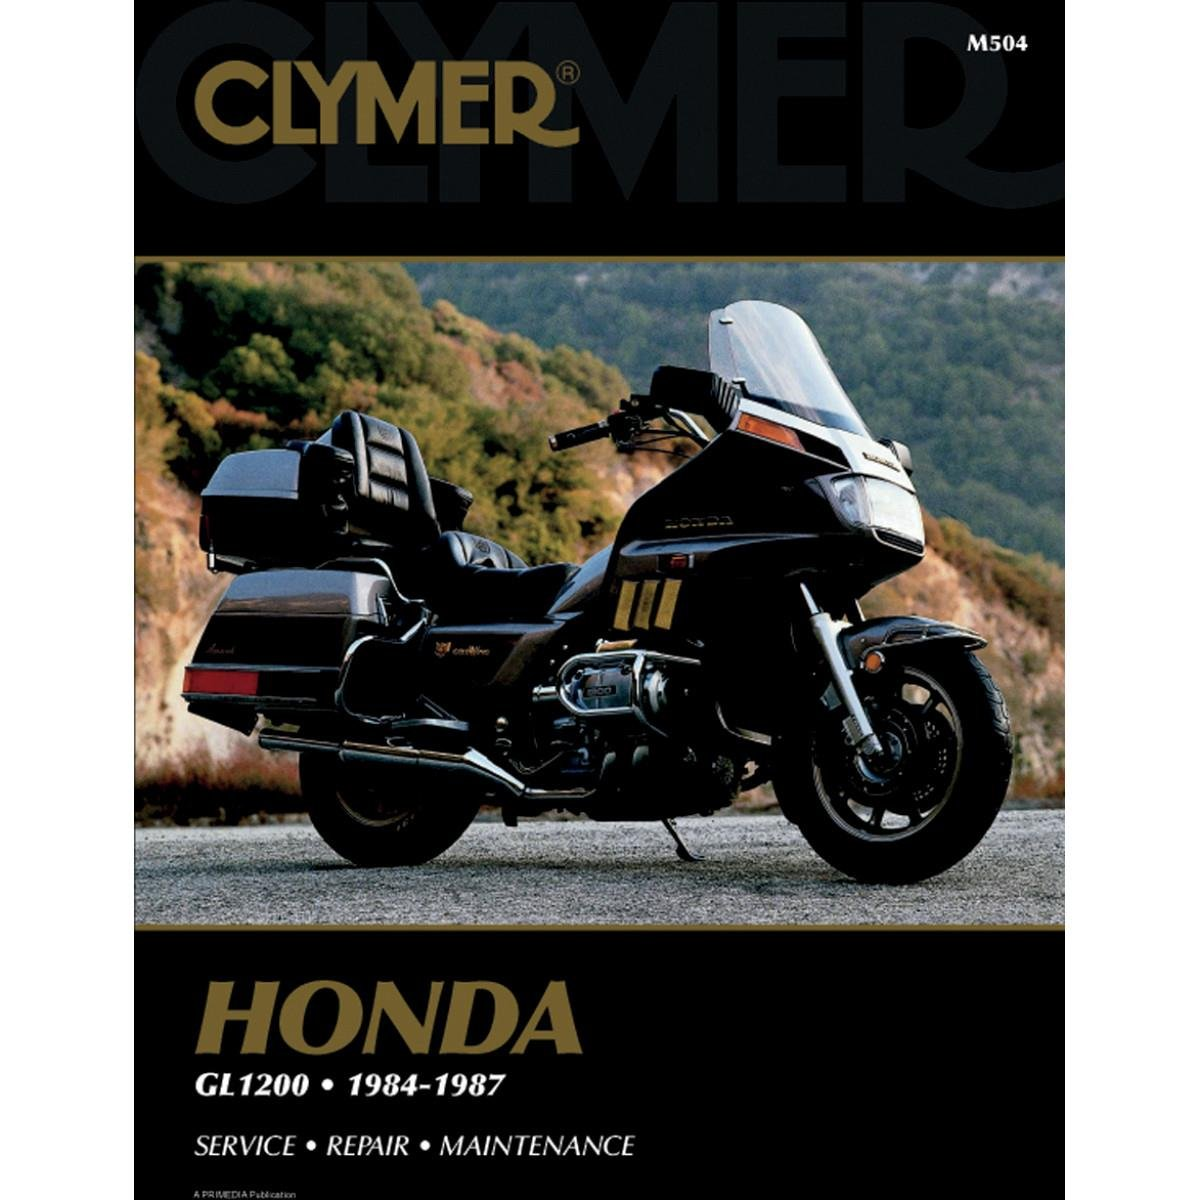 Amazon.com: Clymer Honda GL1200 Gold Wing (1984-1987): Home Audio & Theater